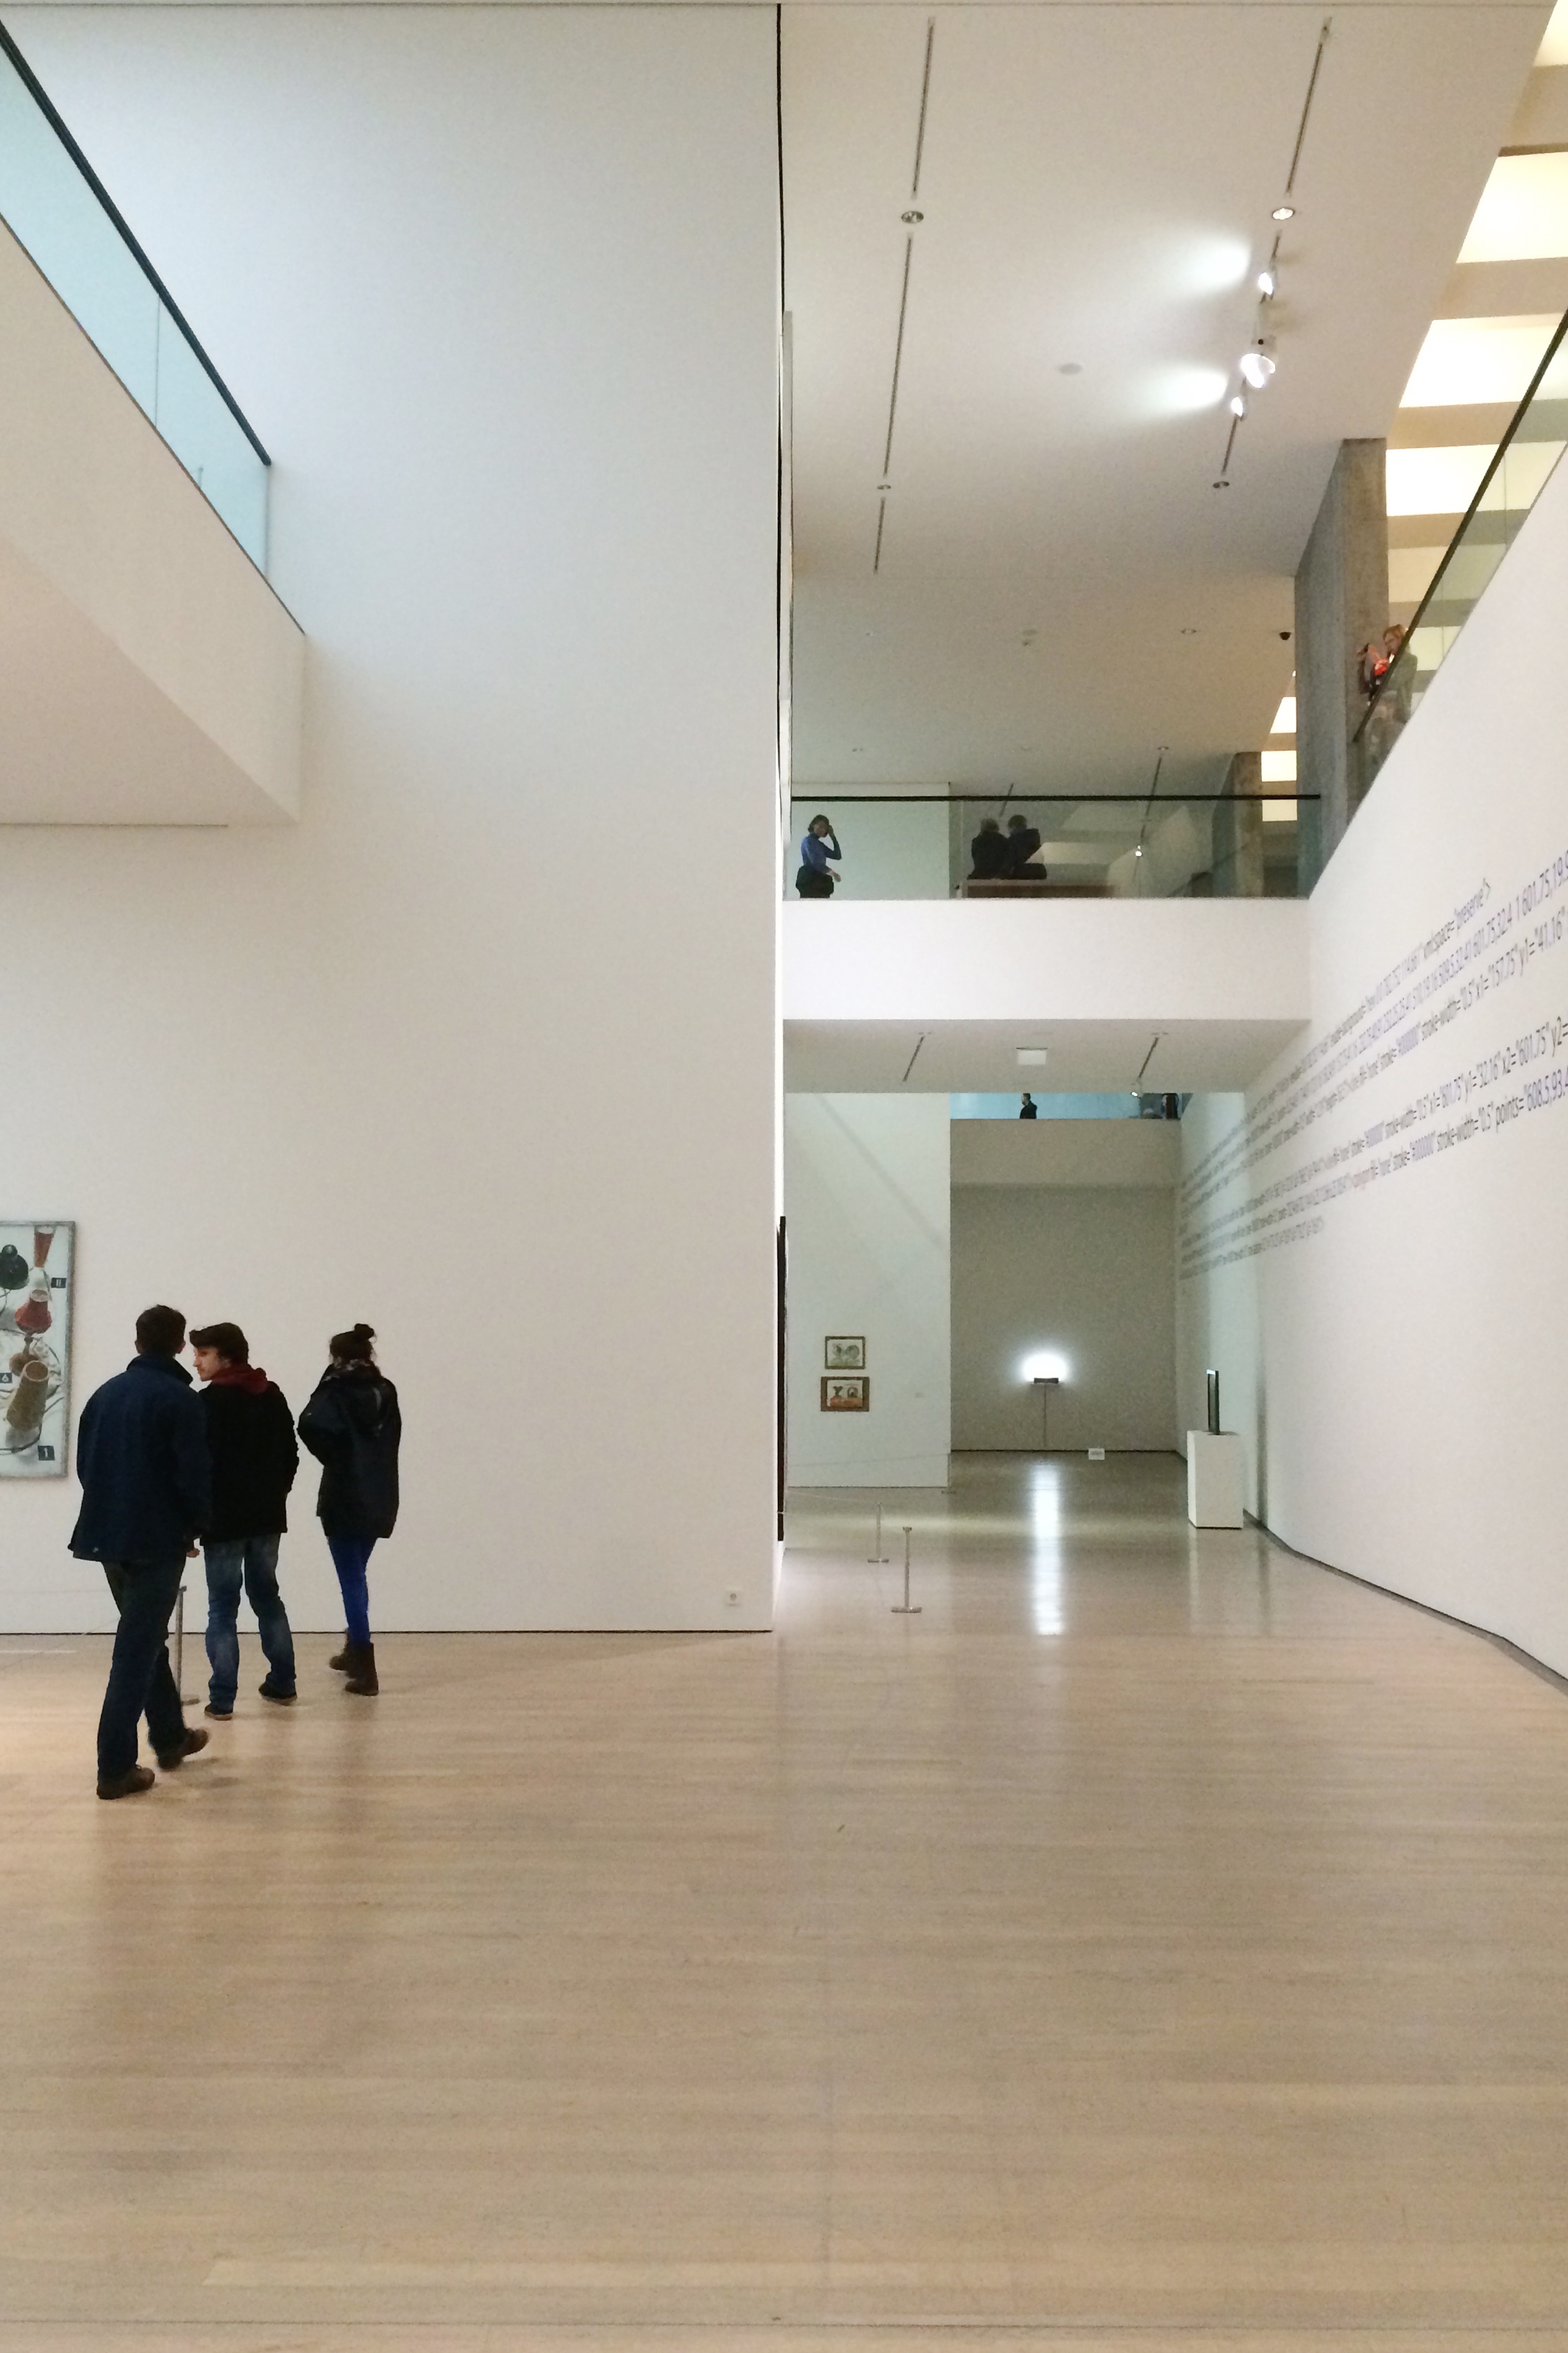 From the Kunstmuseum.